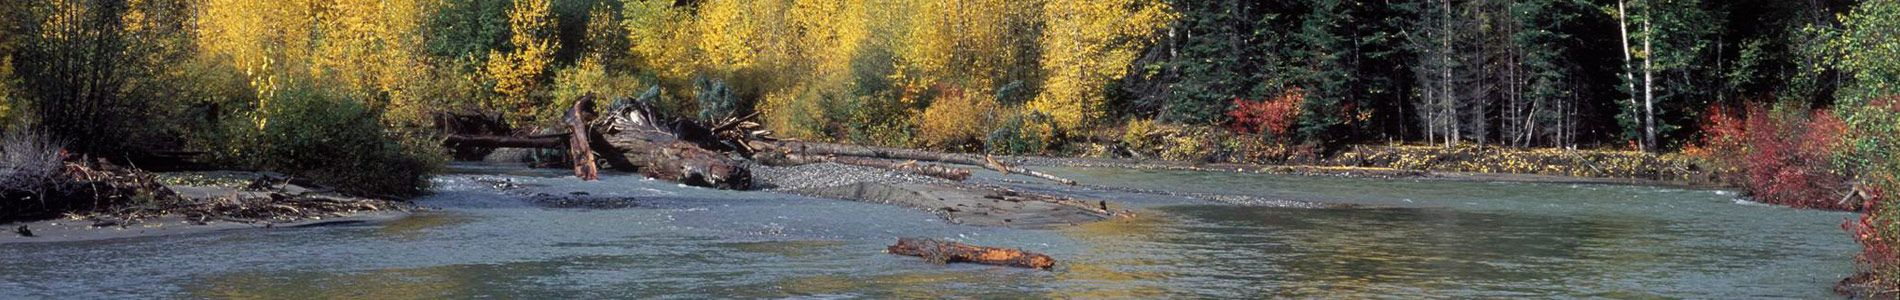 Nason Creek - critical salmon habitat